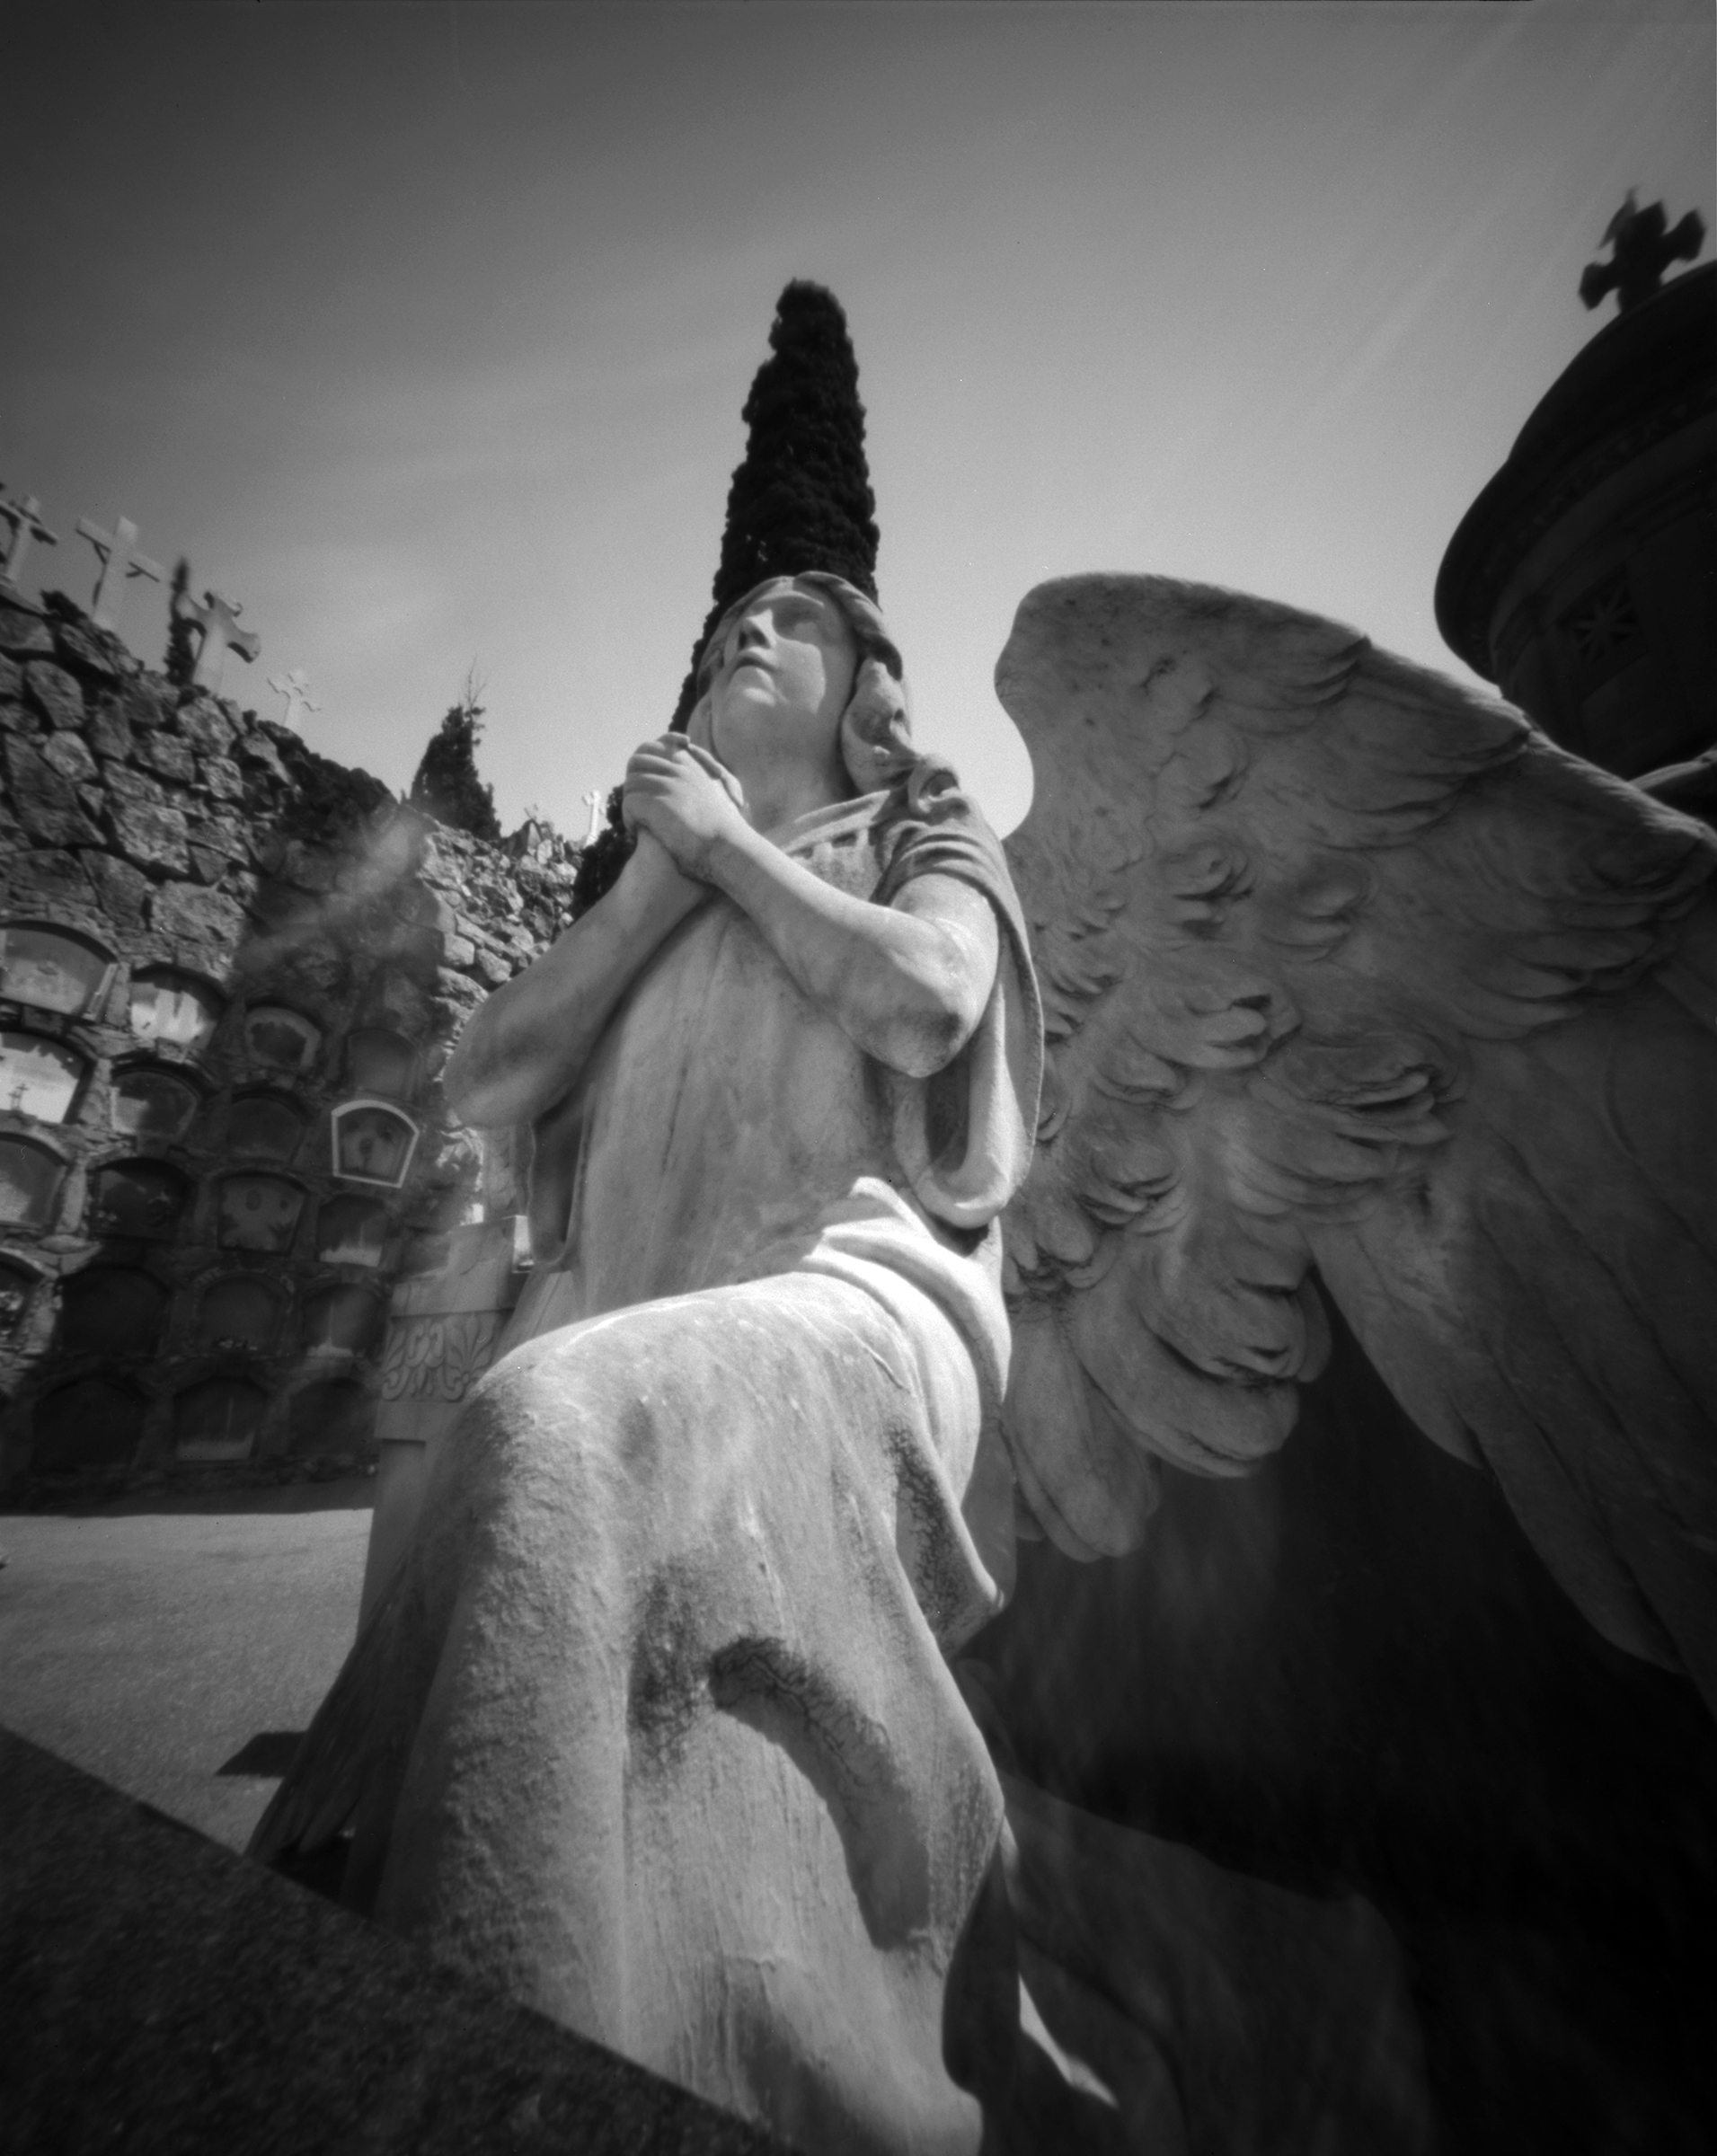 Cemetery of Montjuic - Barcelona, Spain - Fomapan 100 ASA in a The Robert Rigby Pinhole Camera - developed on homebrew 510-pyro